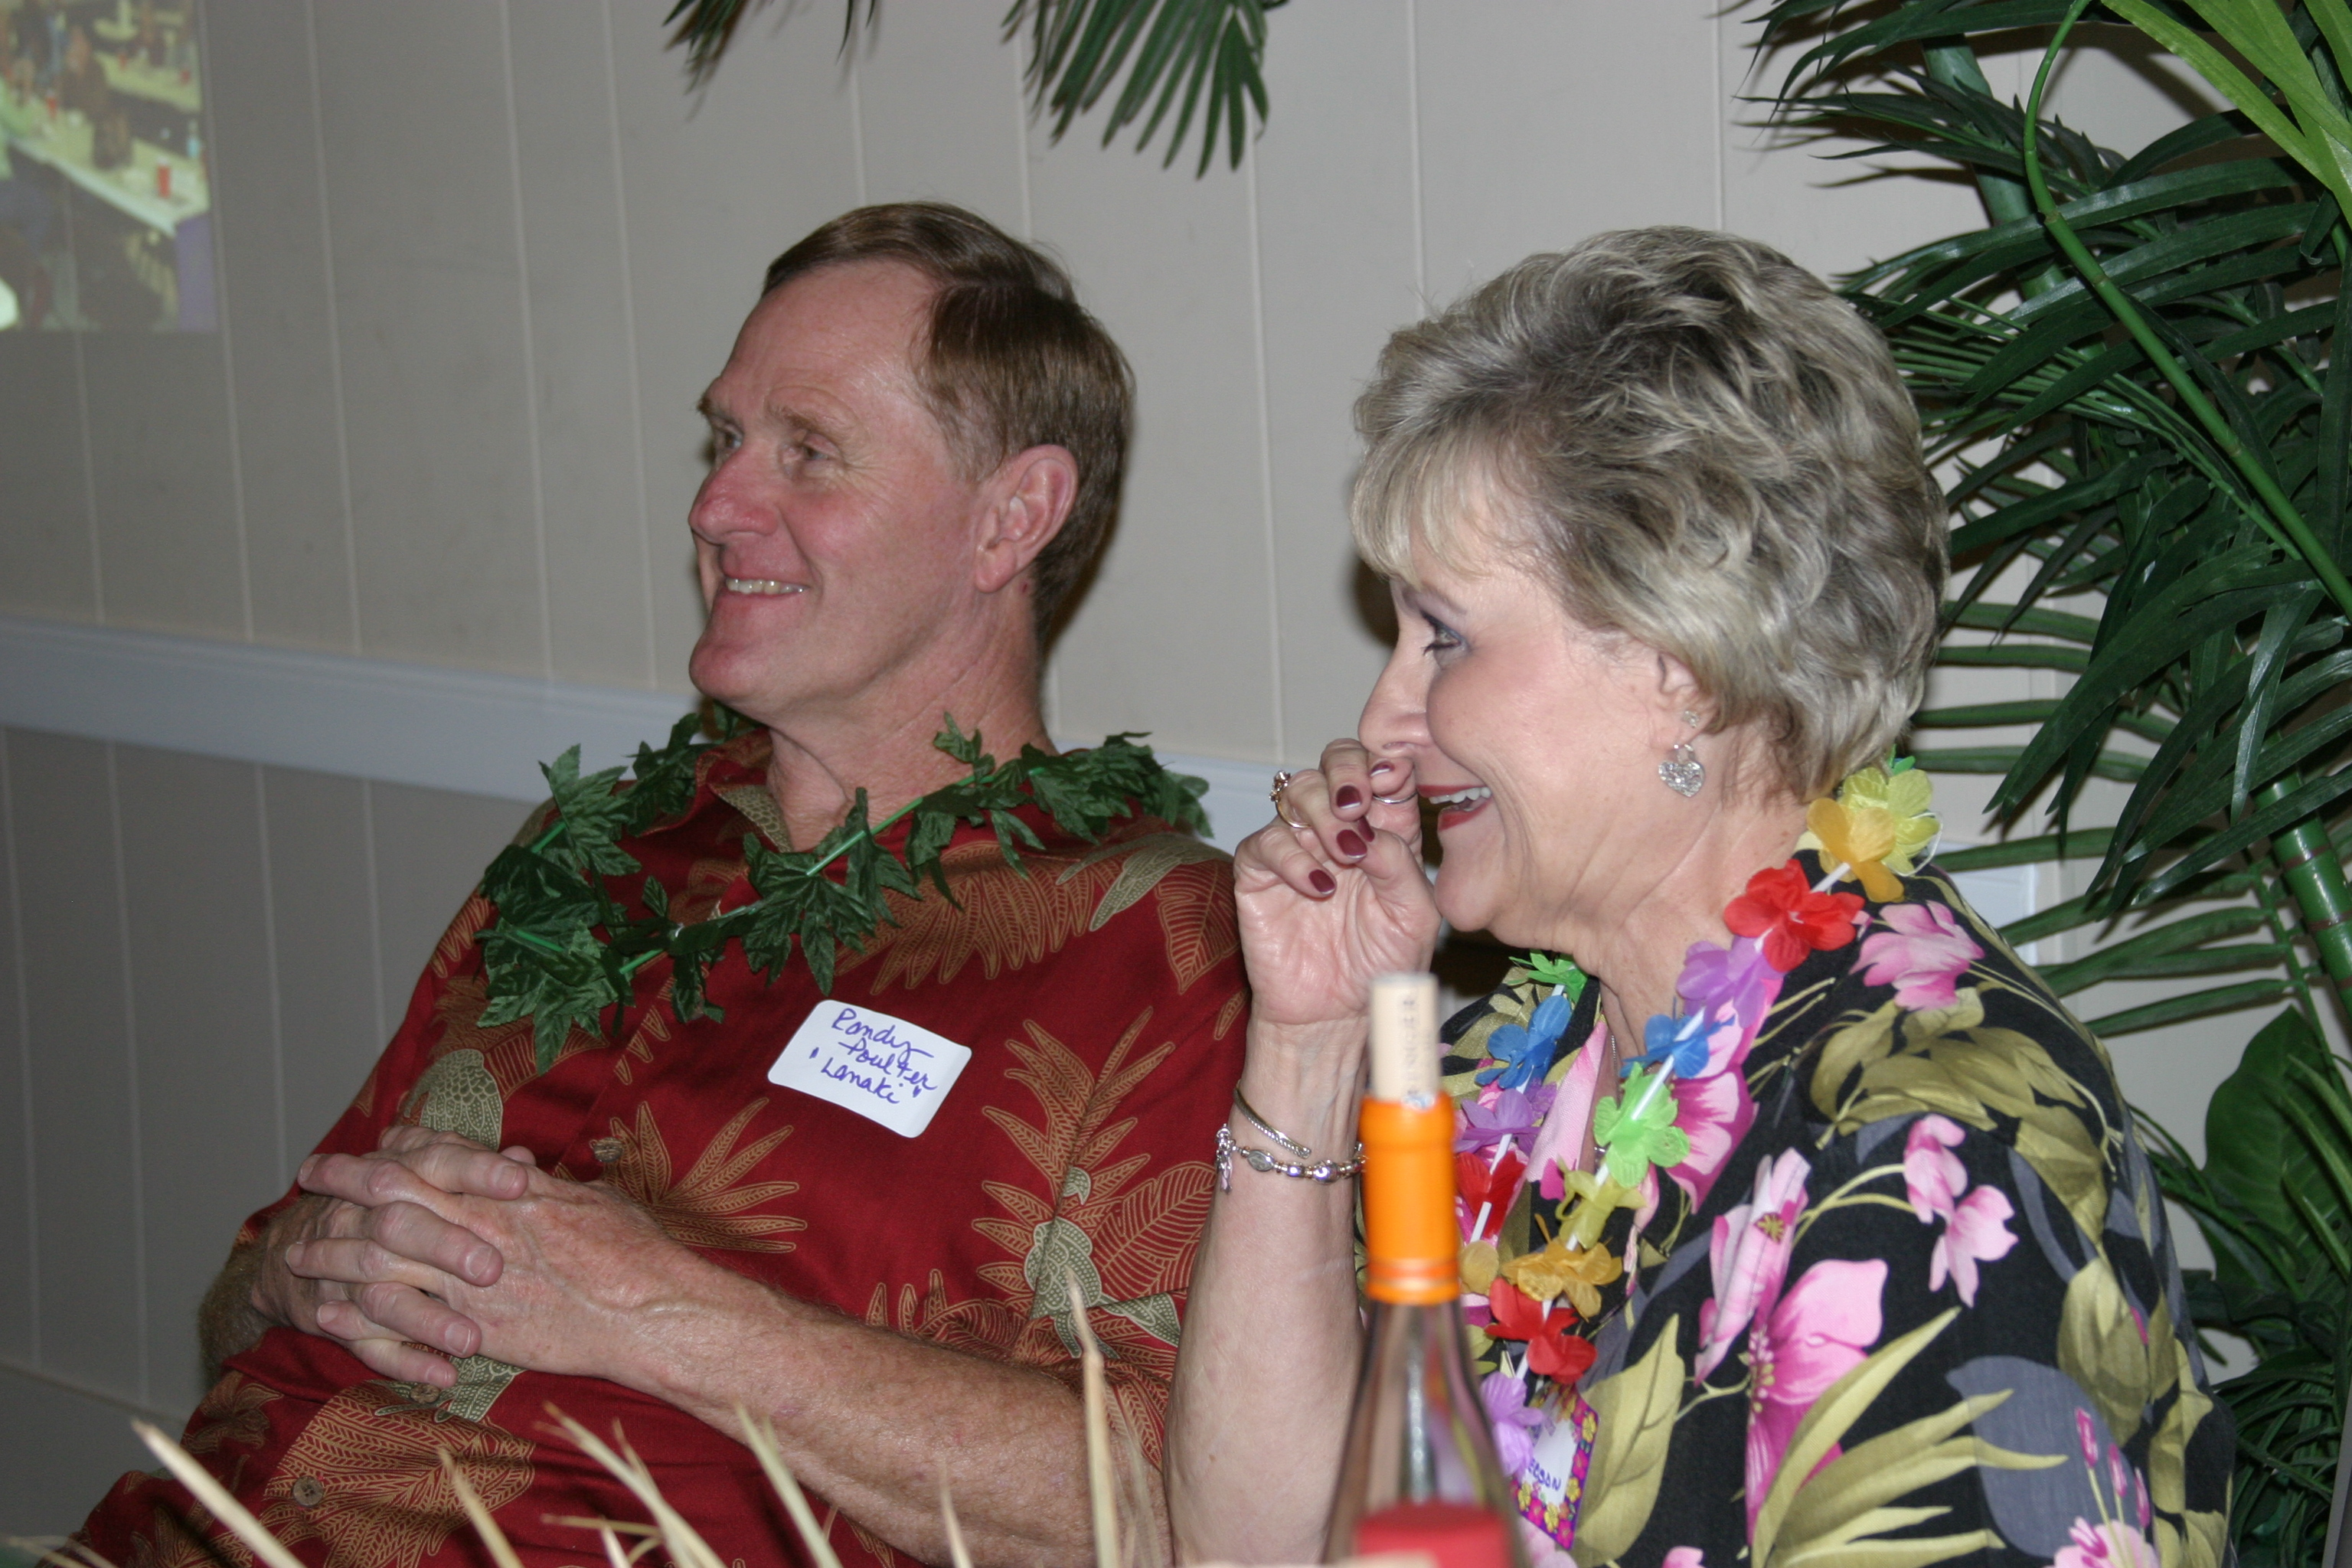 Randy Poulter and Judy Anderson